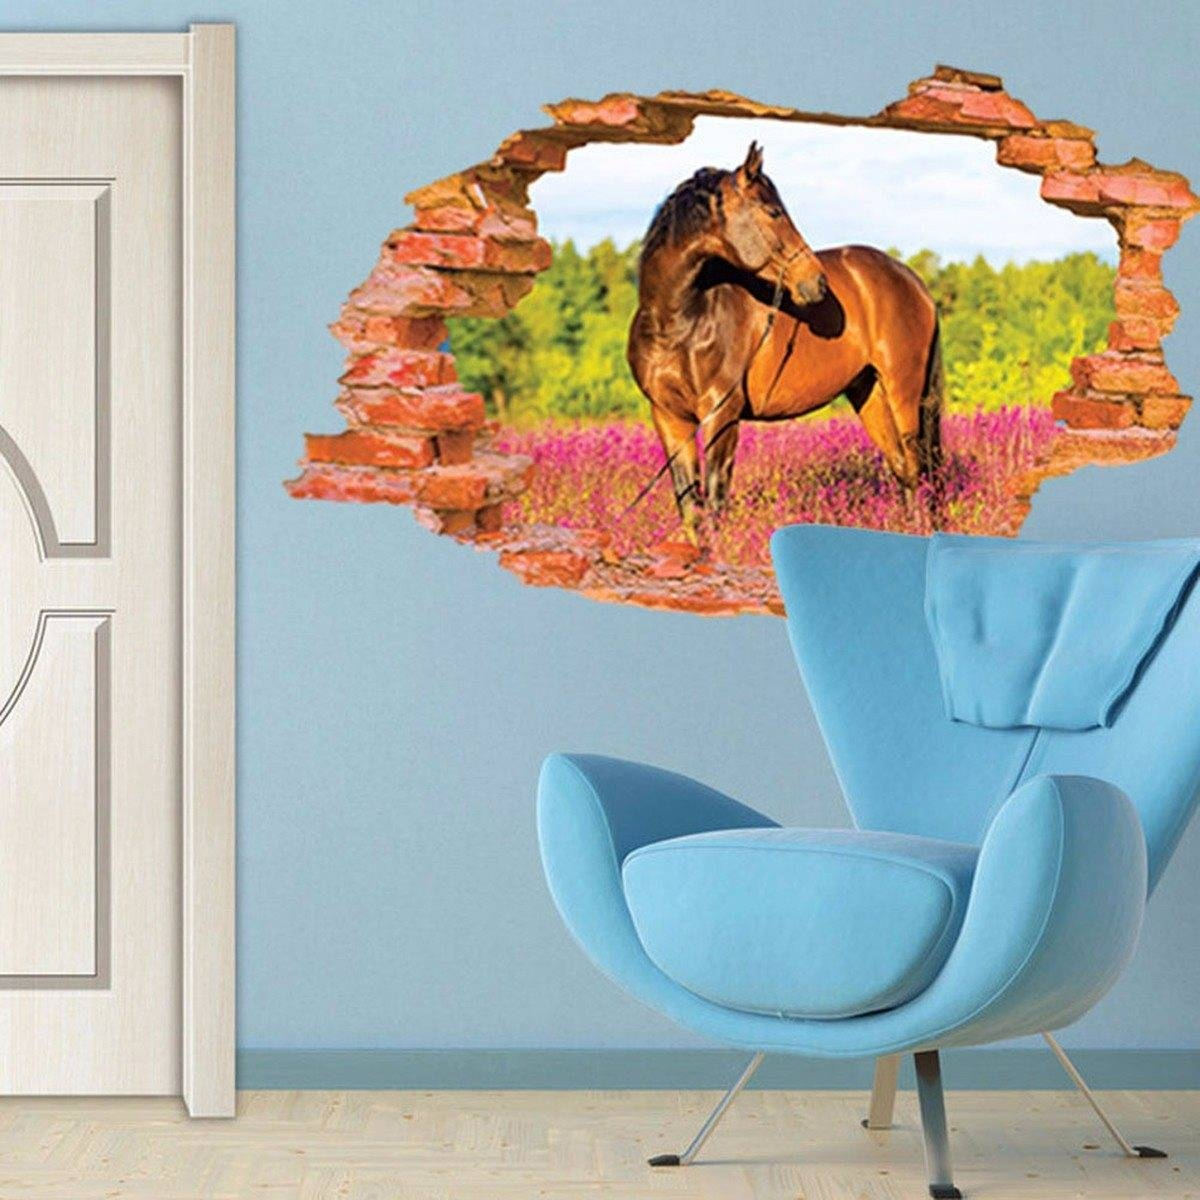 Removable Vinyl 3D Broken Horse Animal Wall Stickers Landscape Within Most Recently Released Animals 3D Wall Art (View 18 of 20)